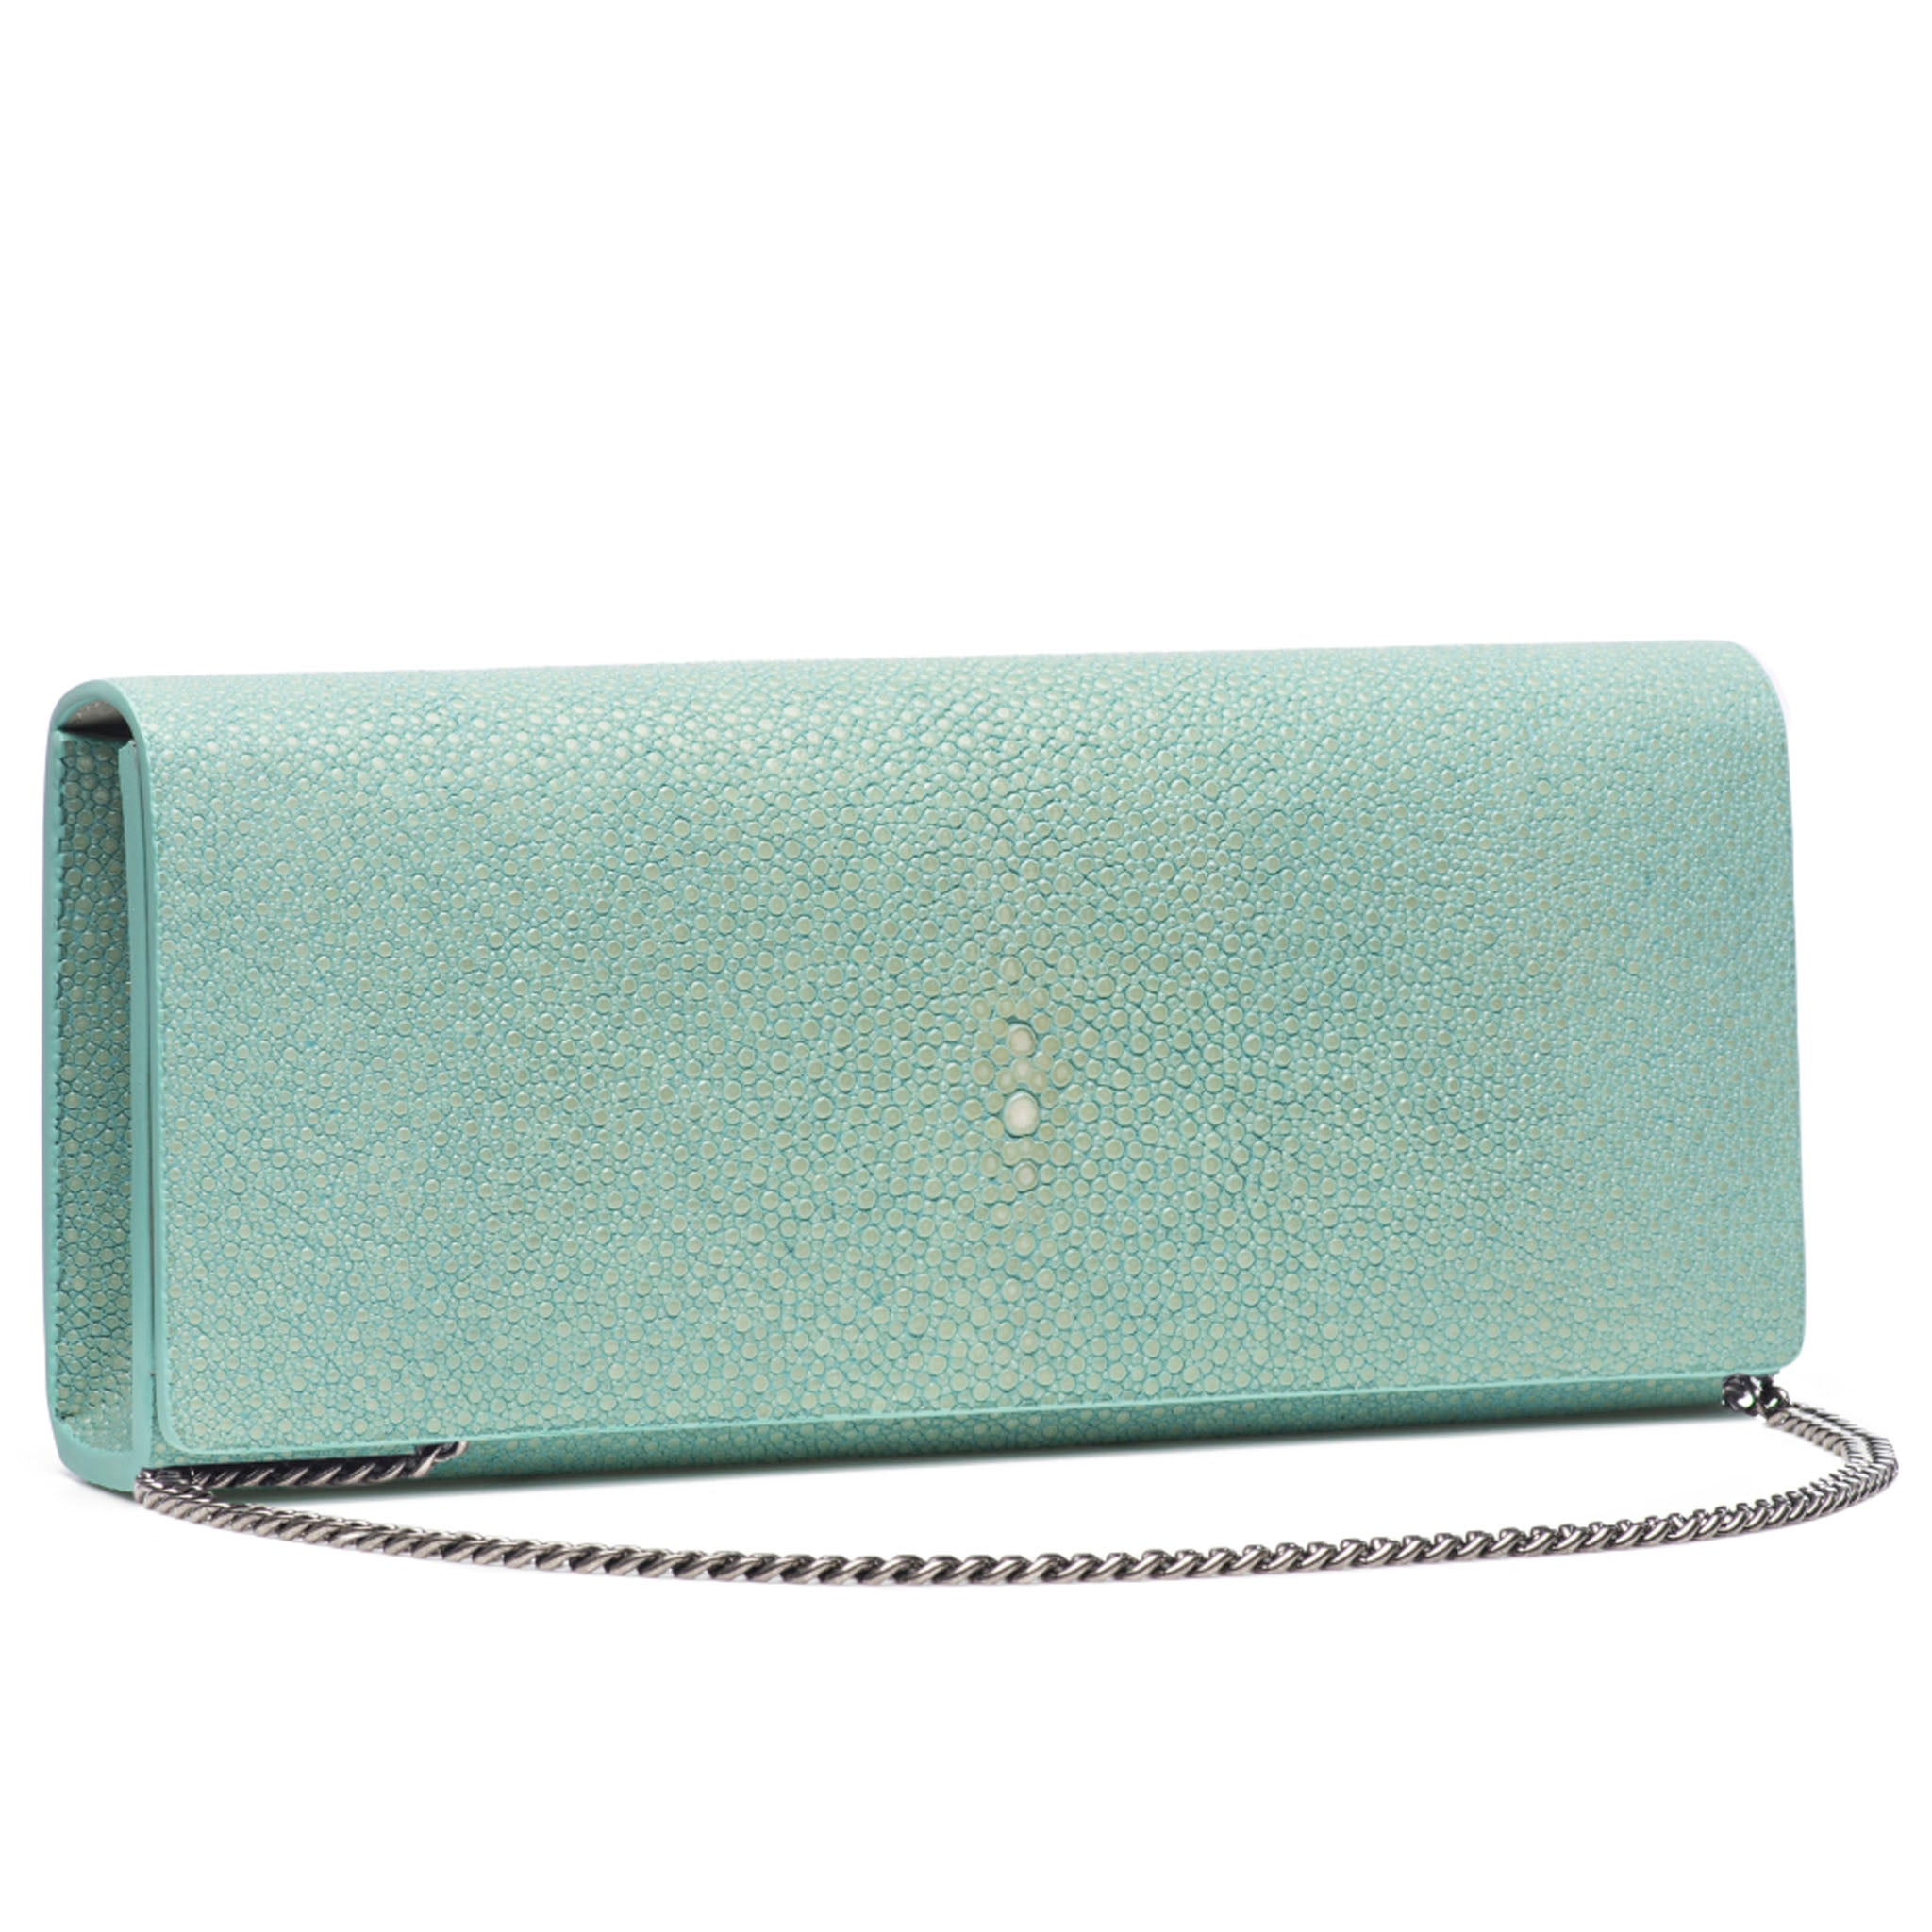 Sky Shagreen Clutch Bag Front View With Chain Cleo - Vivo Direct